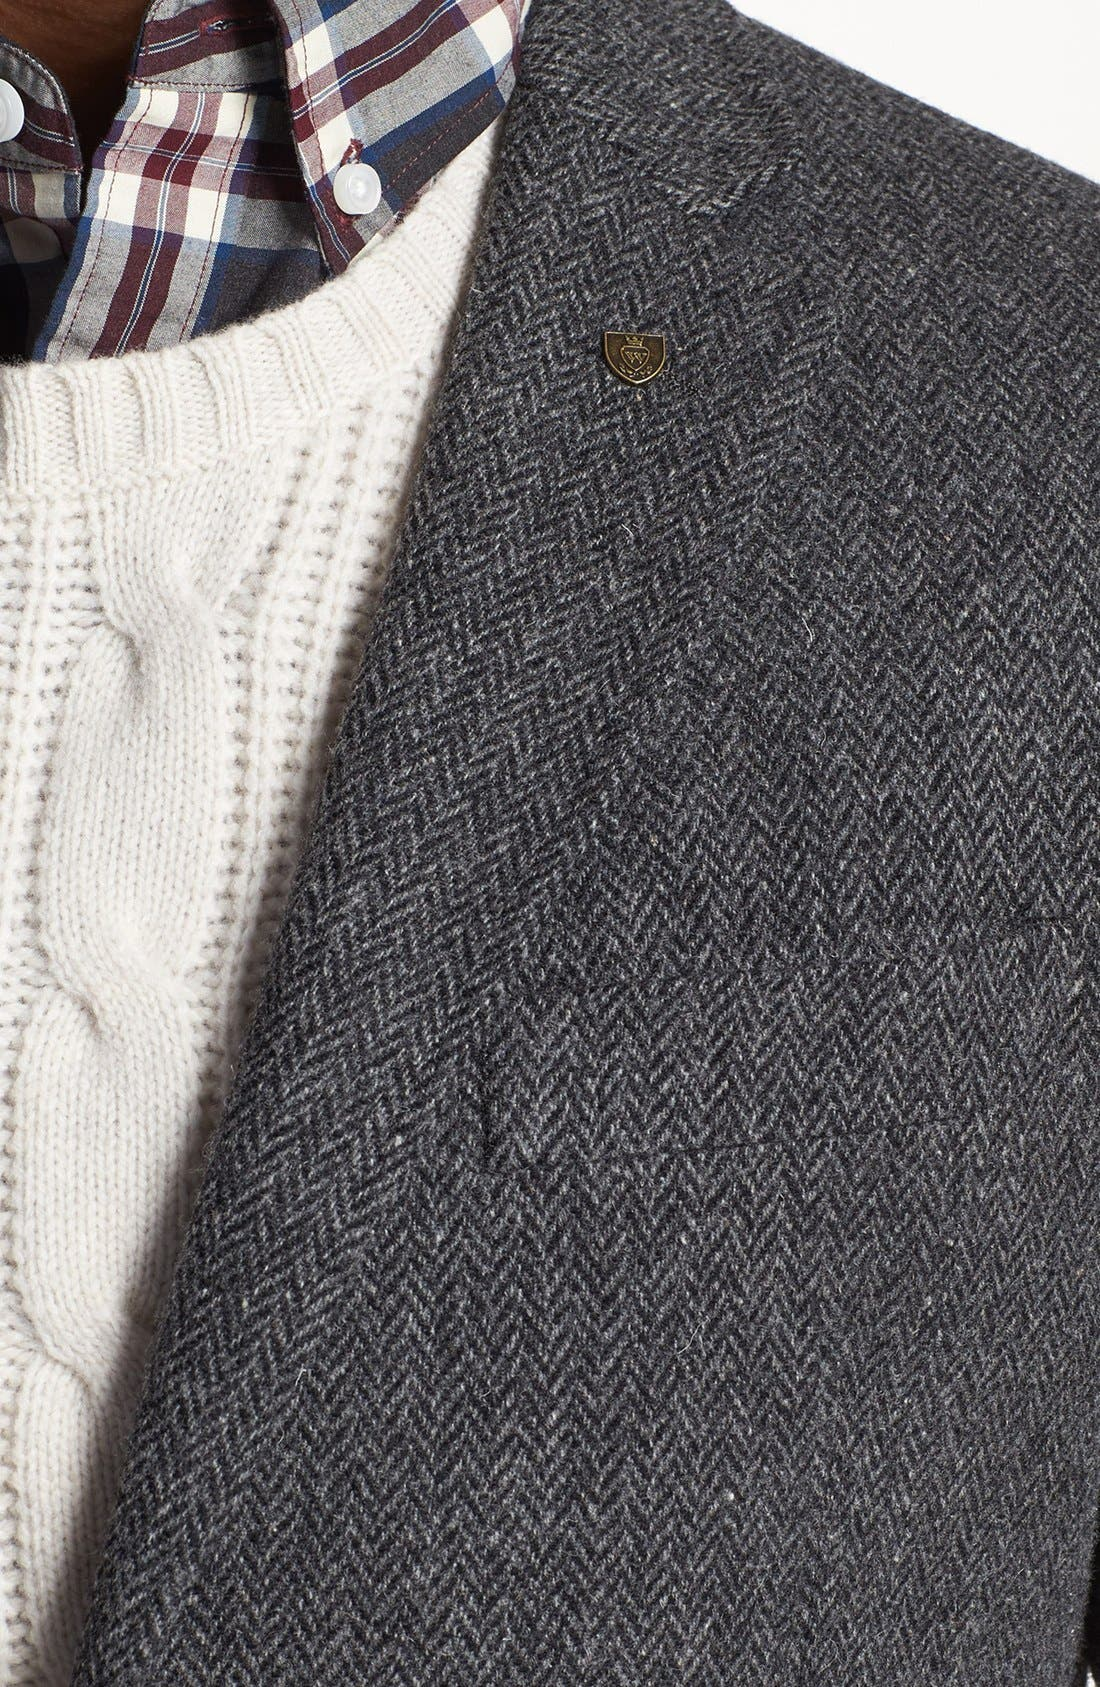 Alternate Image 2  - Wallin & Bros. Extra Trim Fit Herringbone Sportcoat